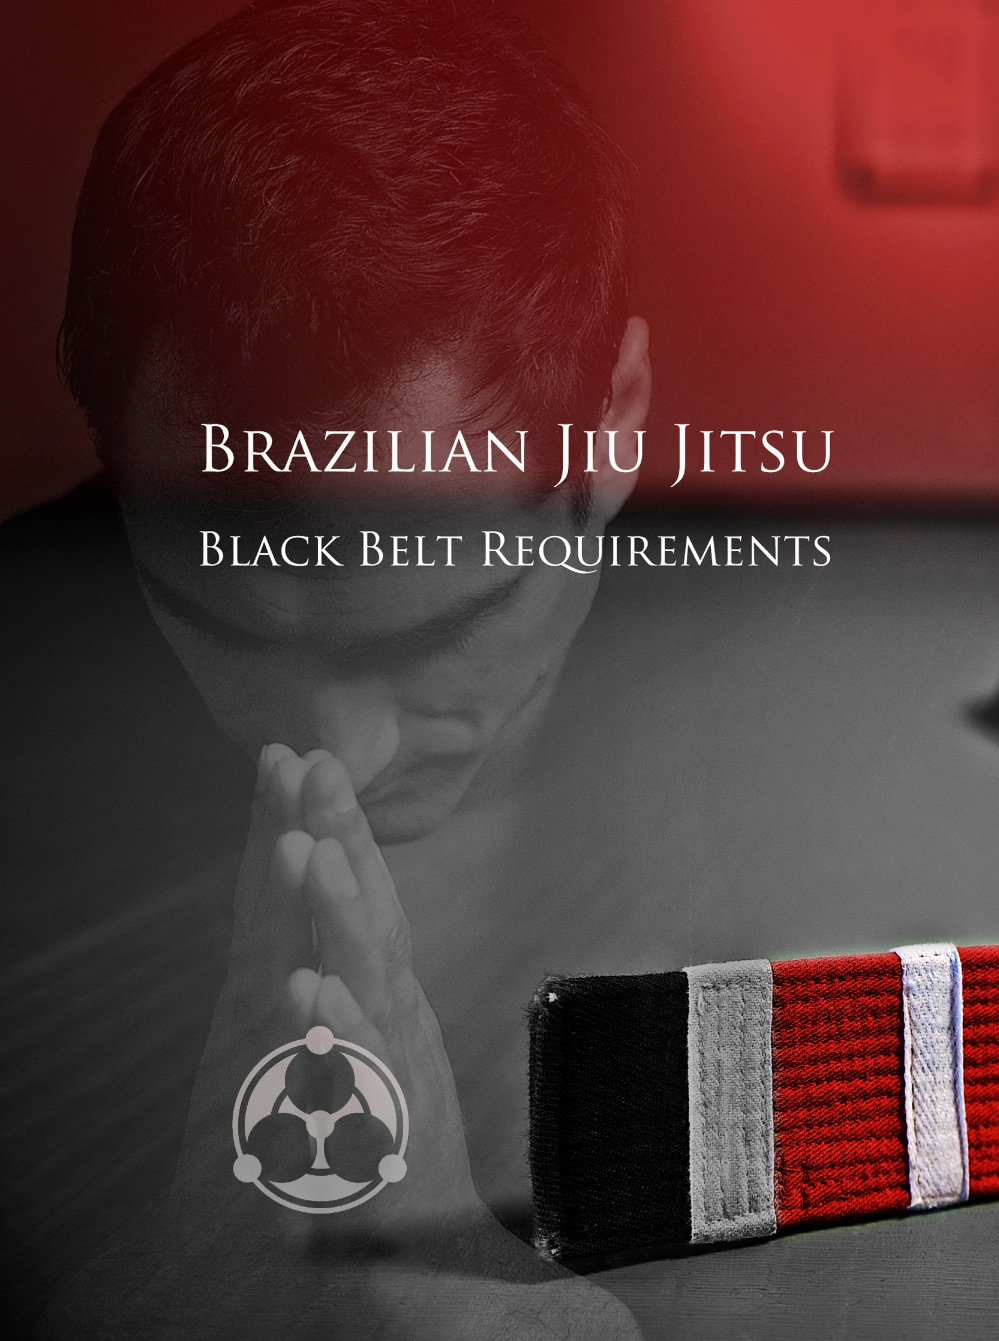 Brazilian Jiu Jitsu Black Belt Requirements